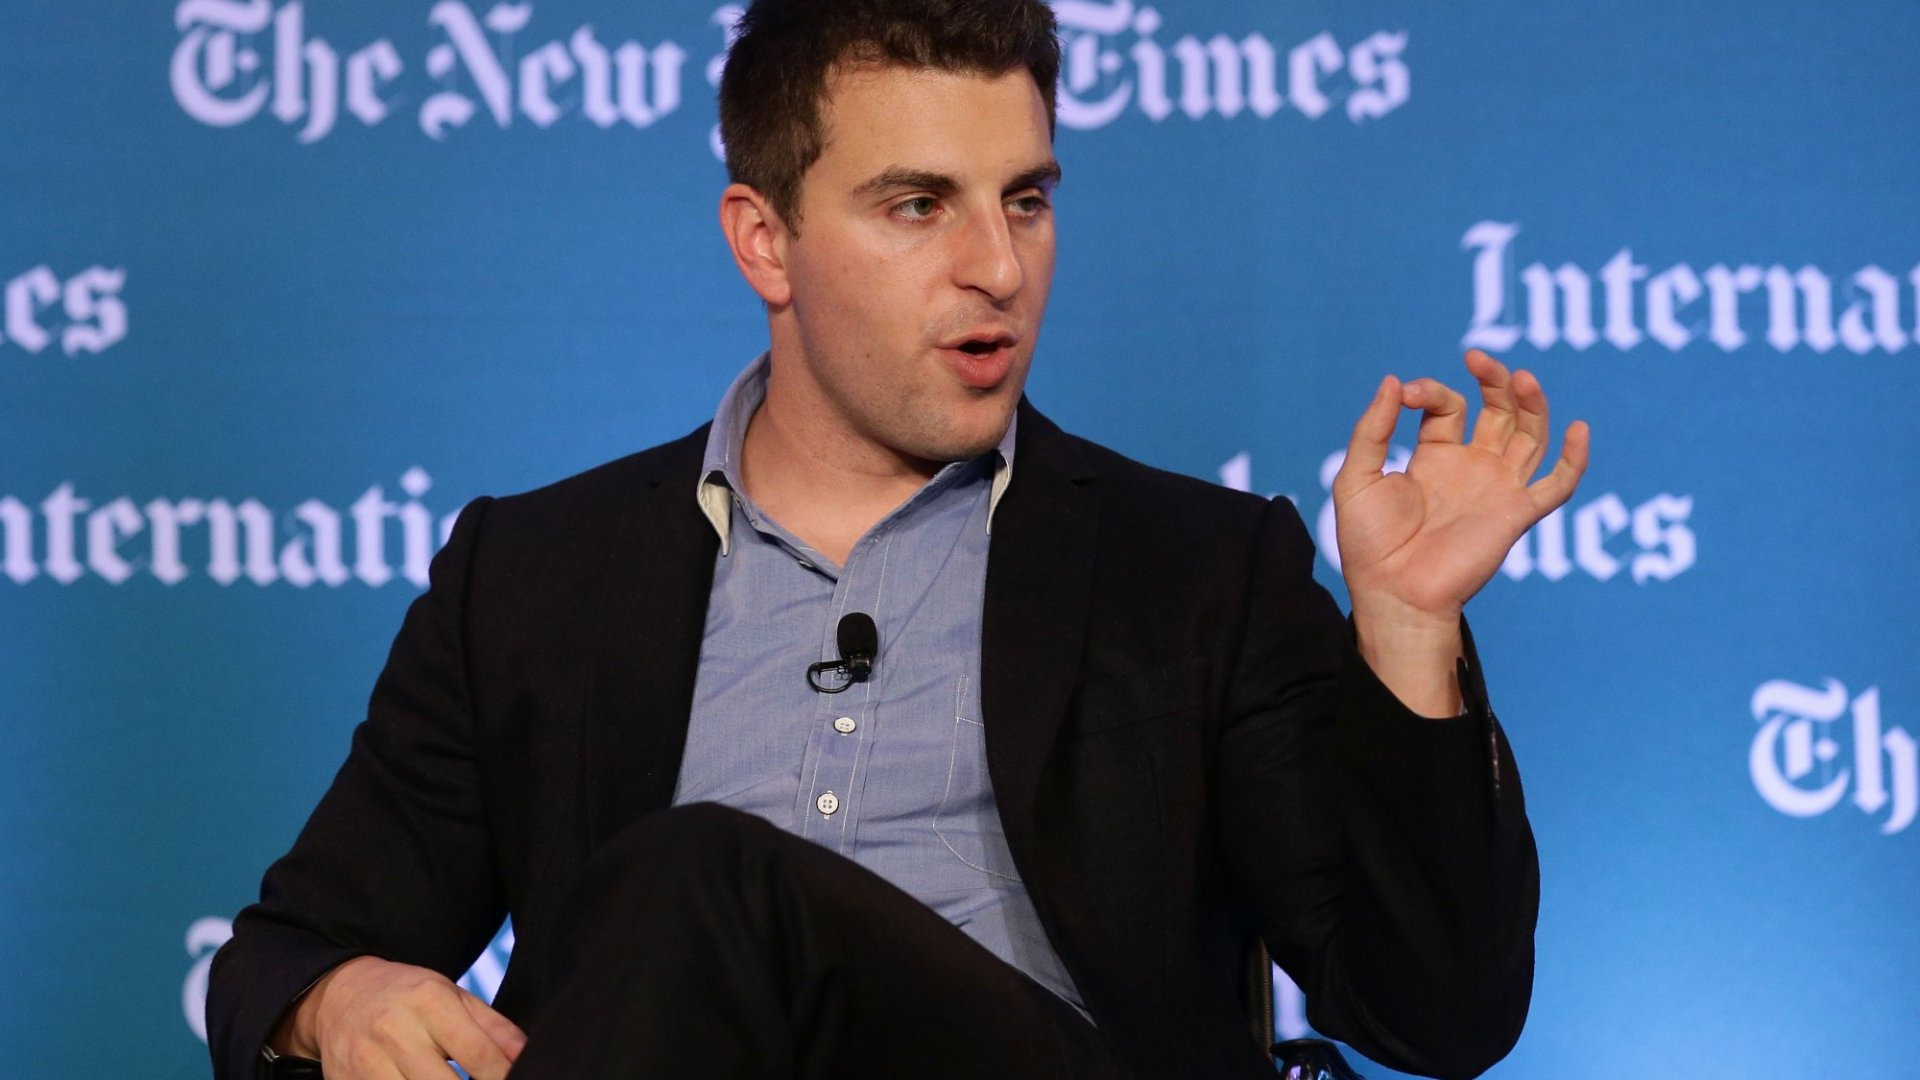 4 Things Airbnb's Brian Chesky Thinks All Young Entrepreneurs Need to Know